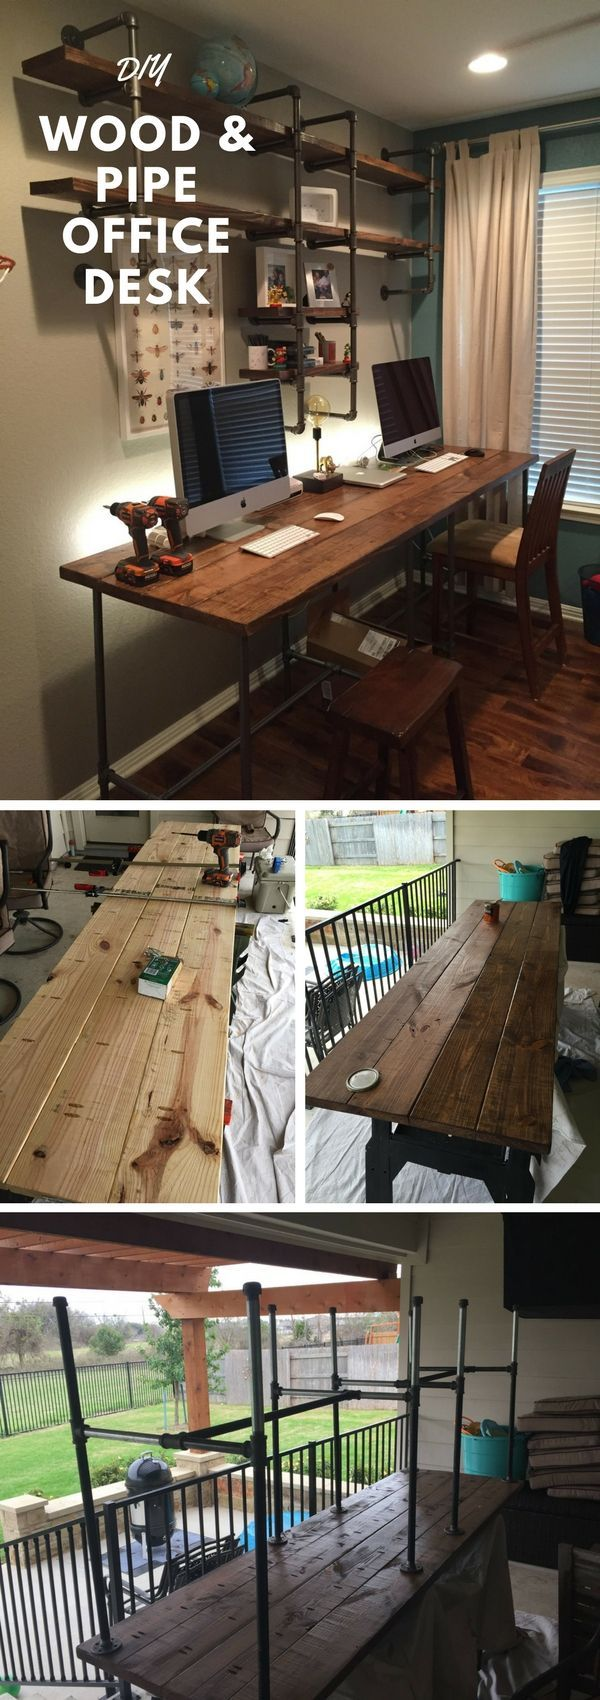 Check out the tutorial how to build a DIY pipe and wood office desk @istandarddesign